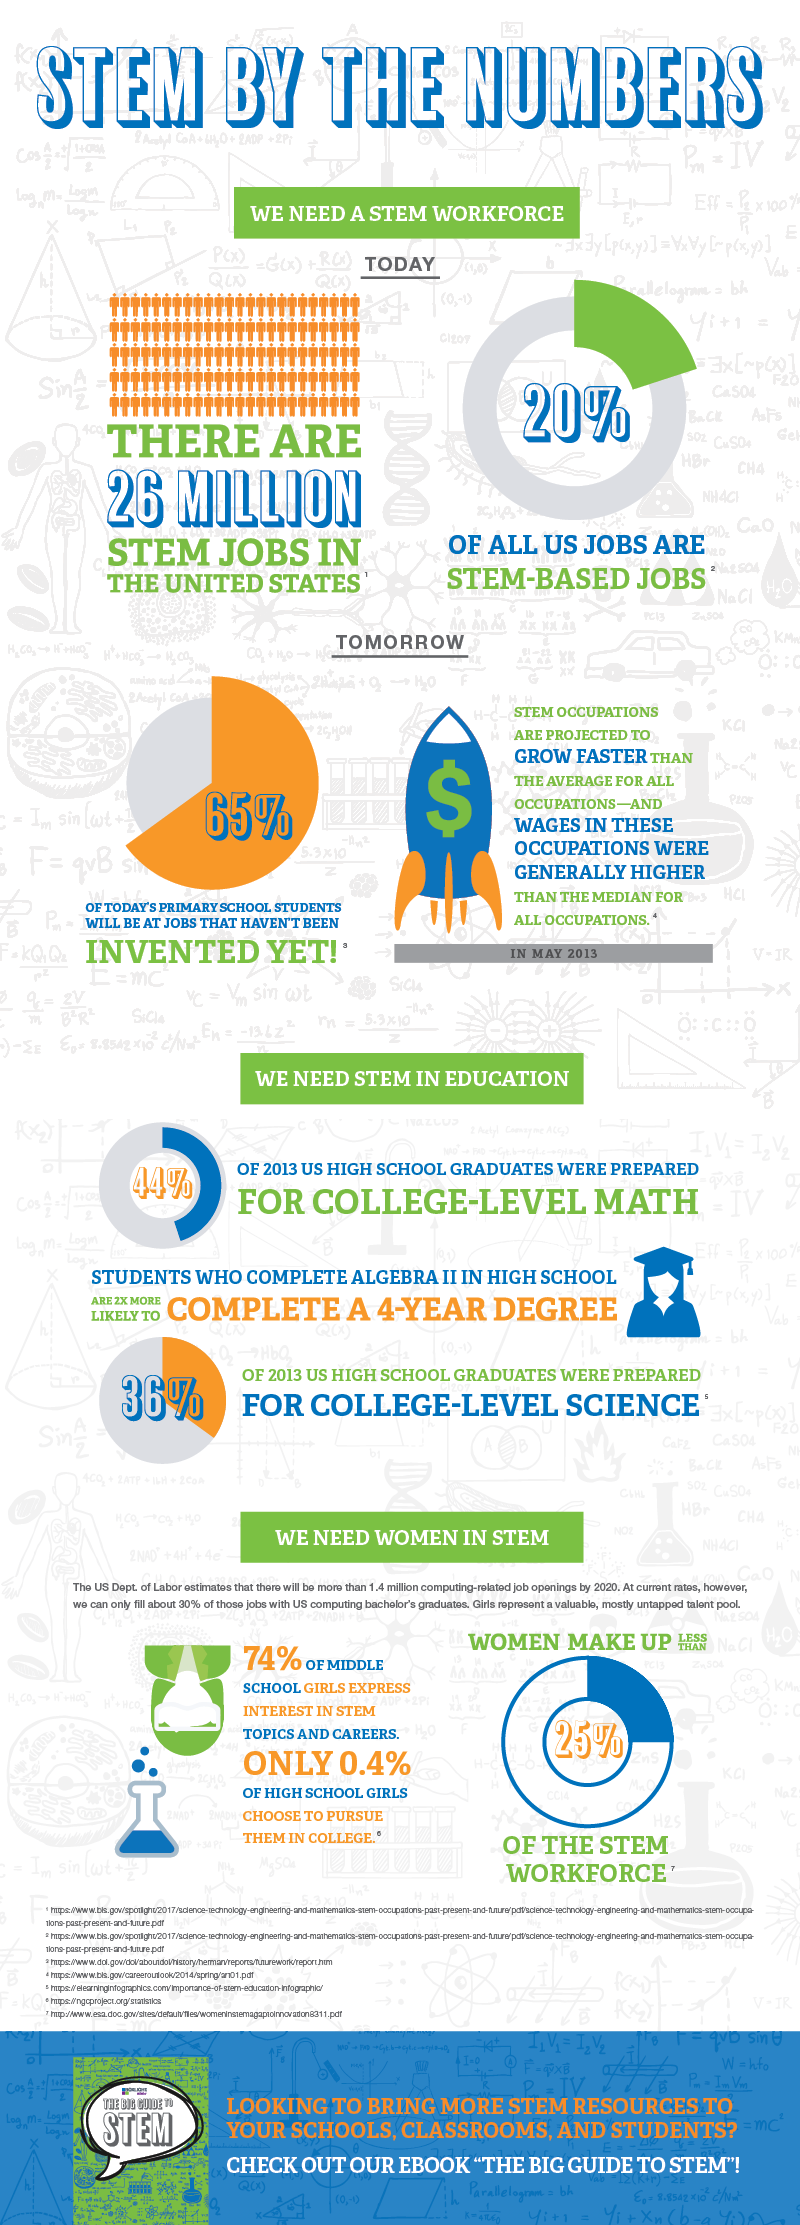 STEM_STATS_Infographic.png